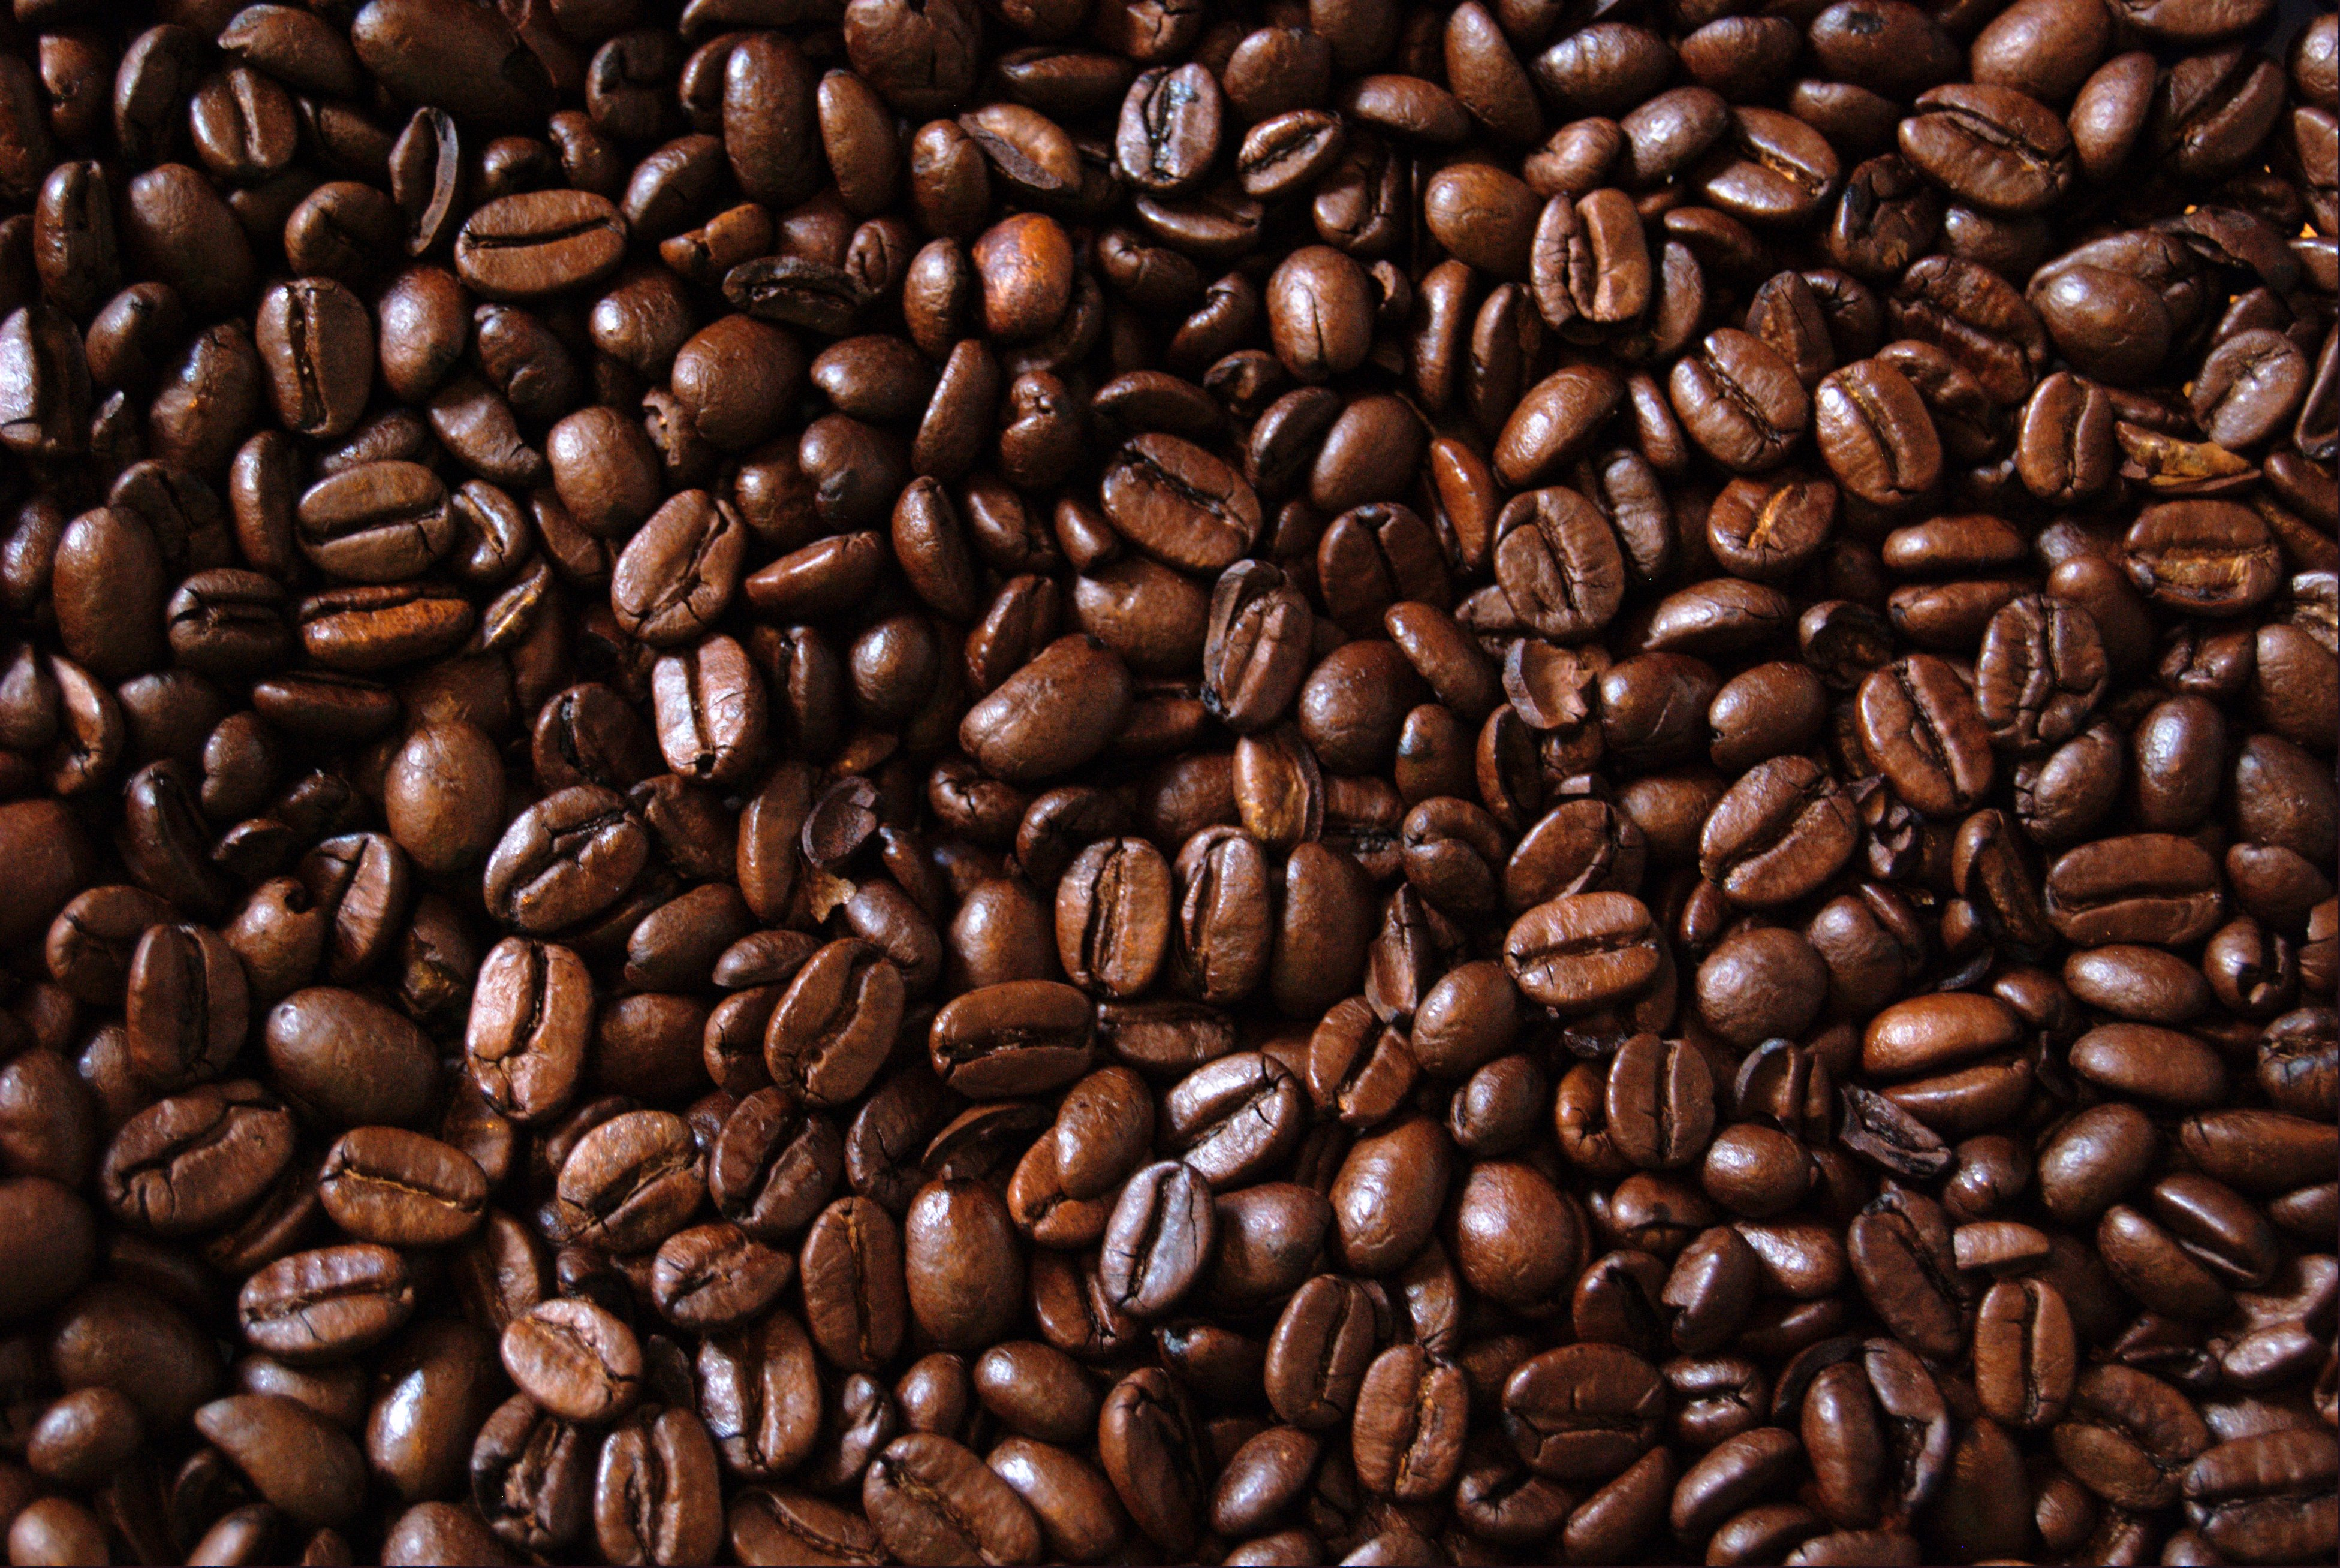 JavaCycle Partners with MZB to Turn Coffee Bean Waste into ...